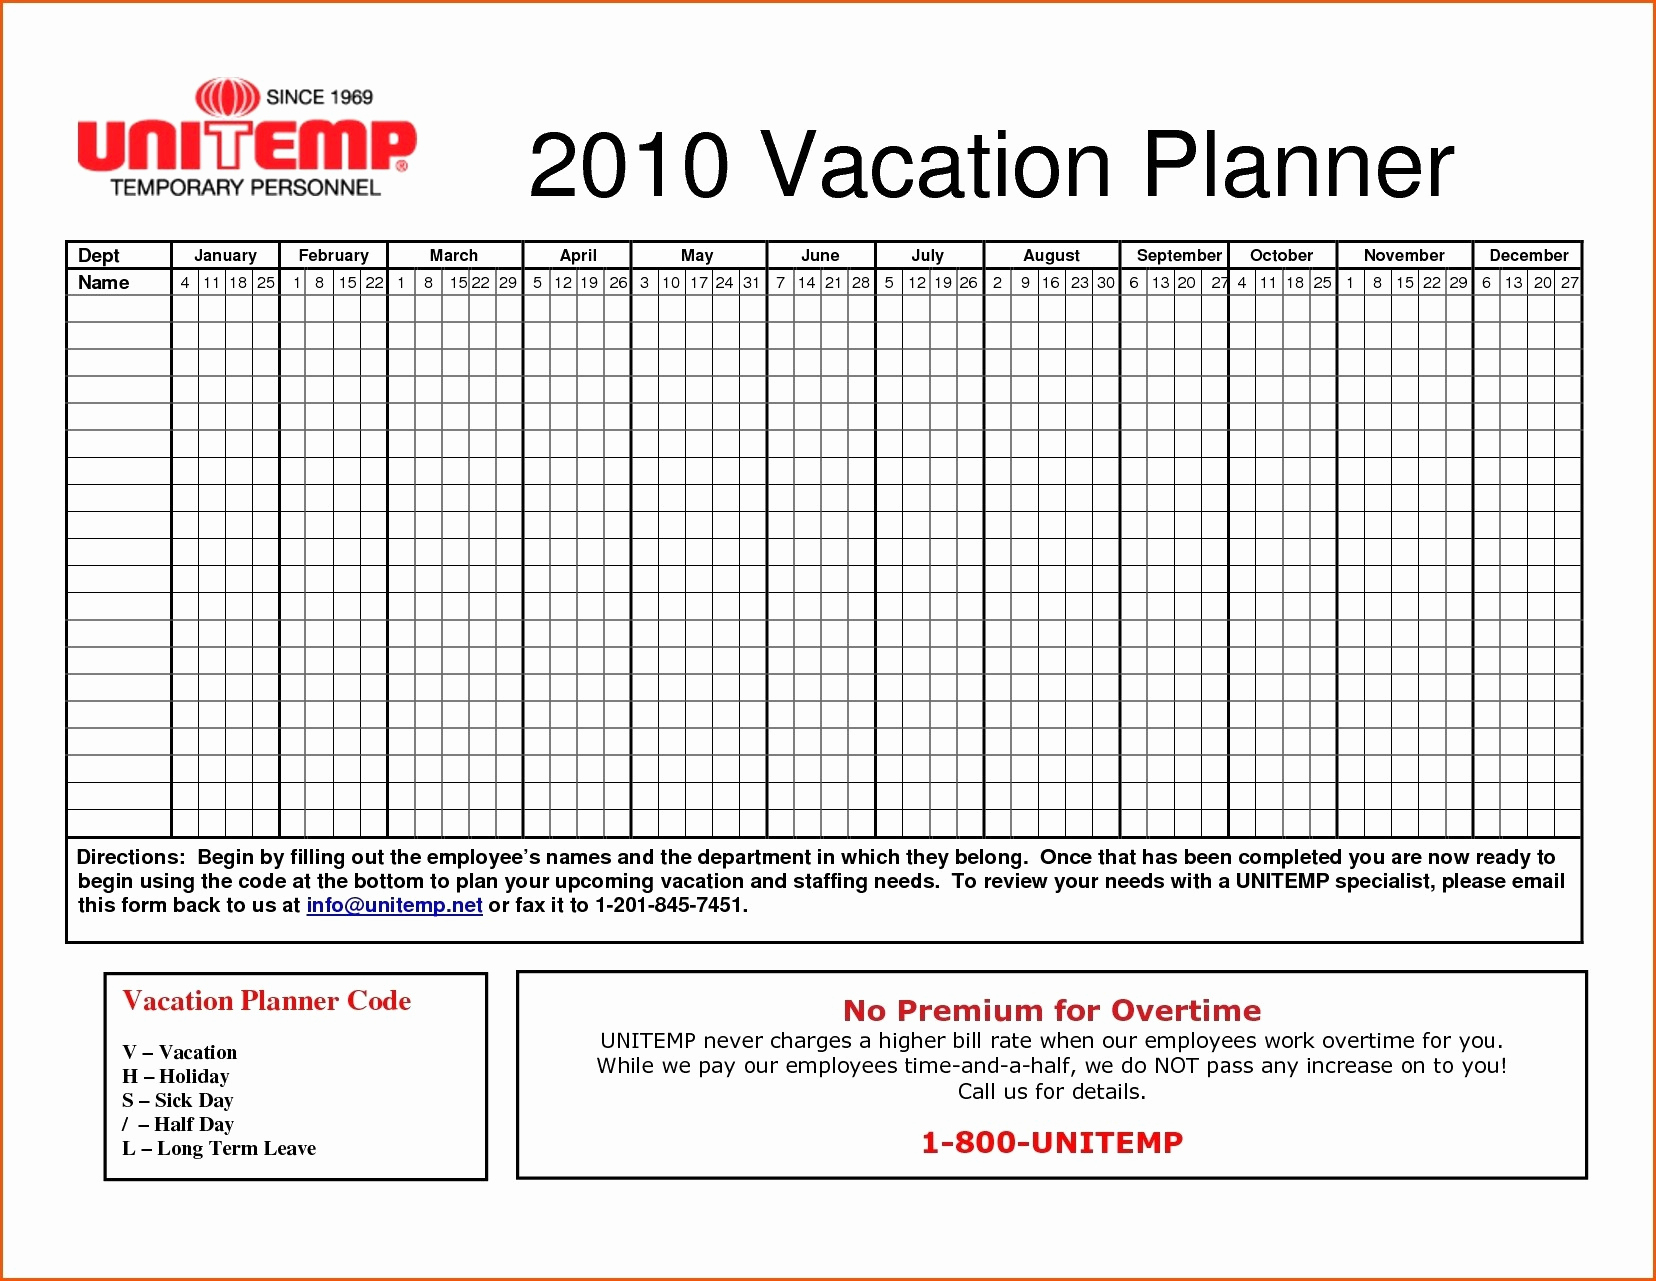 Paid Time Off Tracking Spreadsheet Inside Time Off Tracking Spreadsheet Spreadsheet Softwar Employee Paid Time